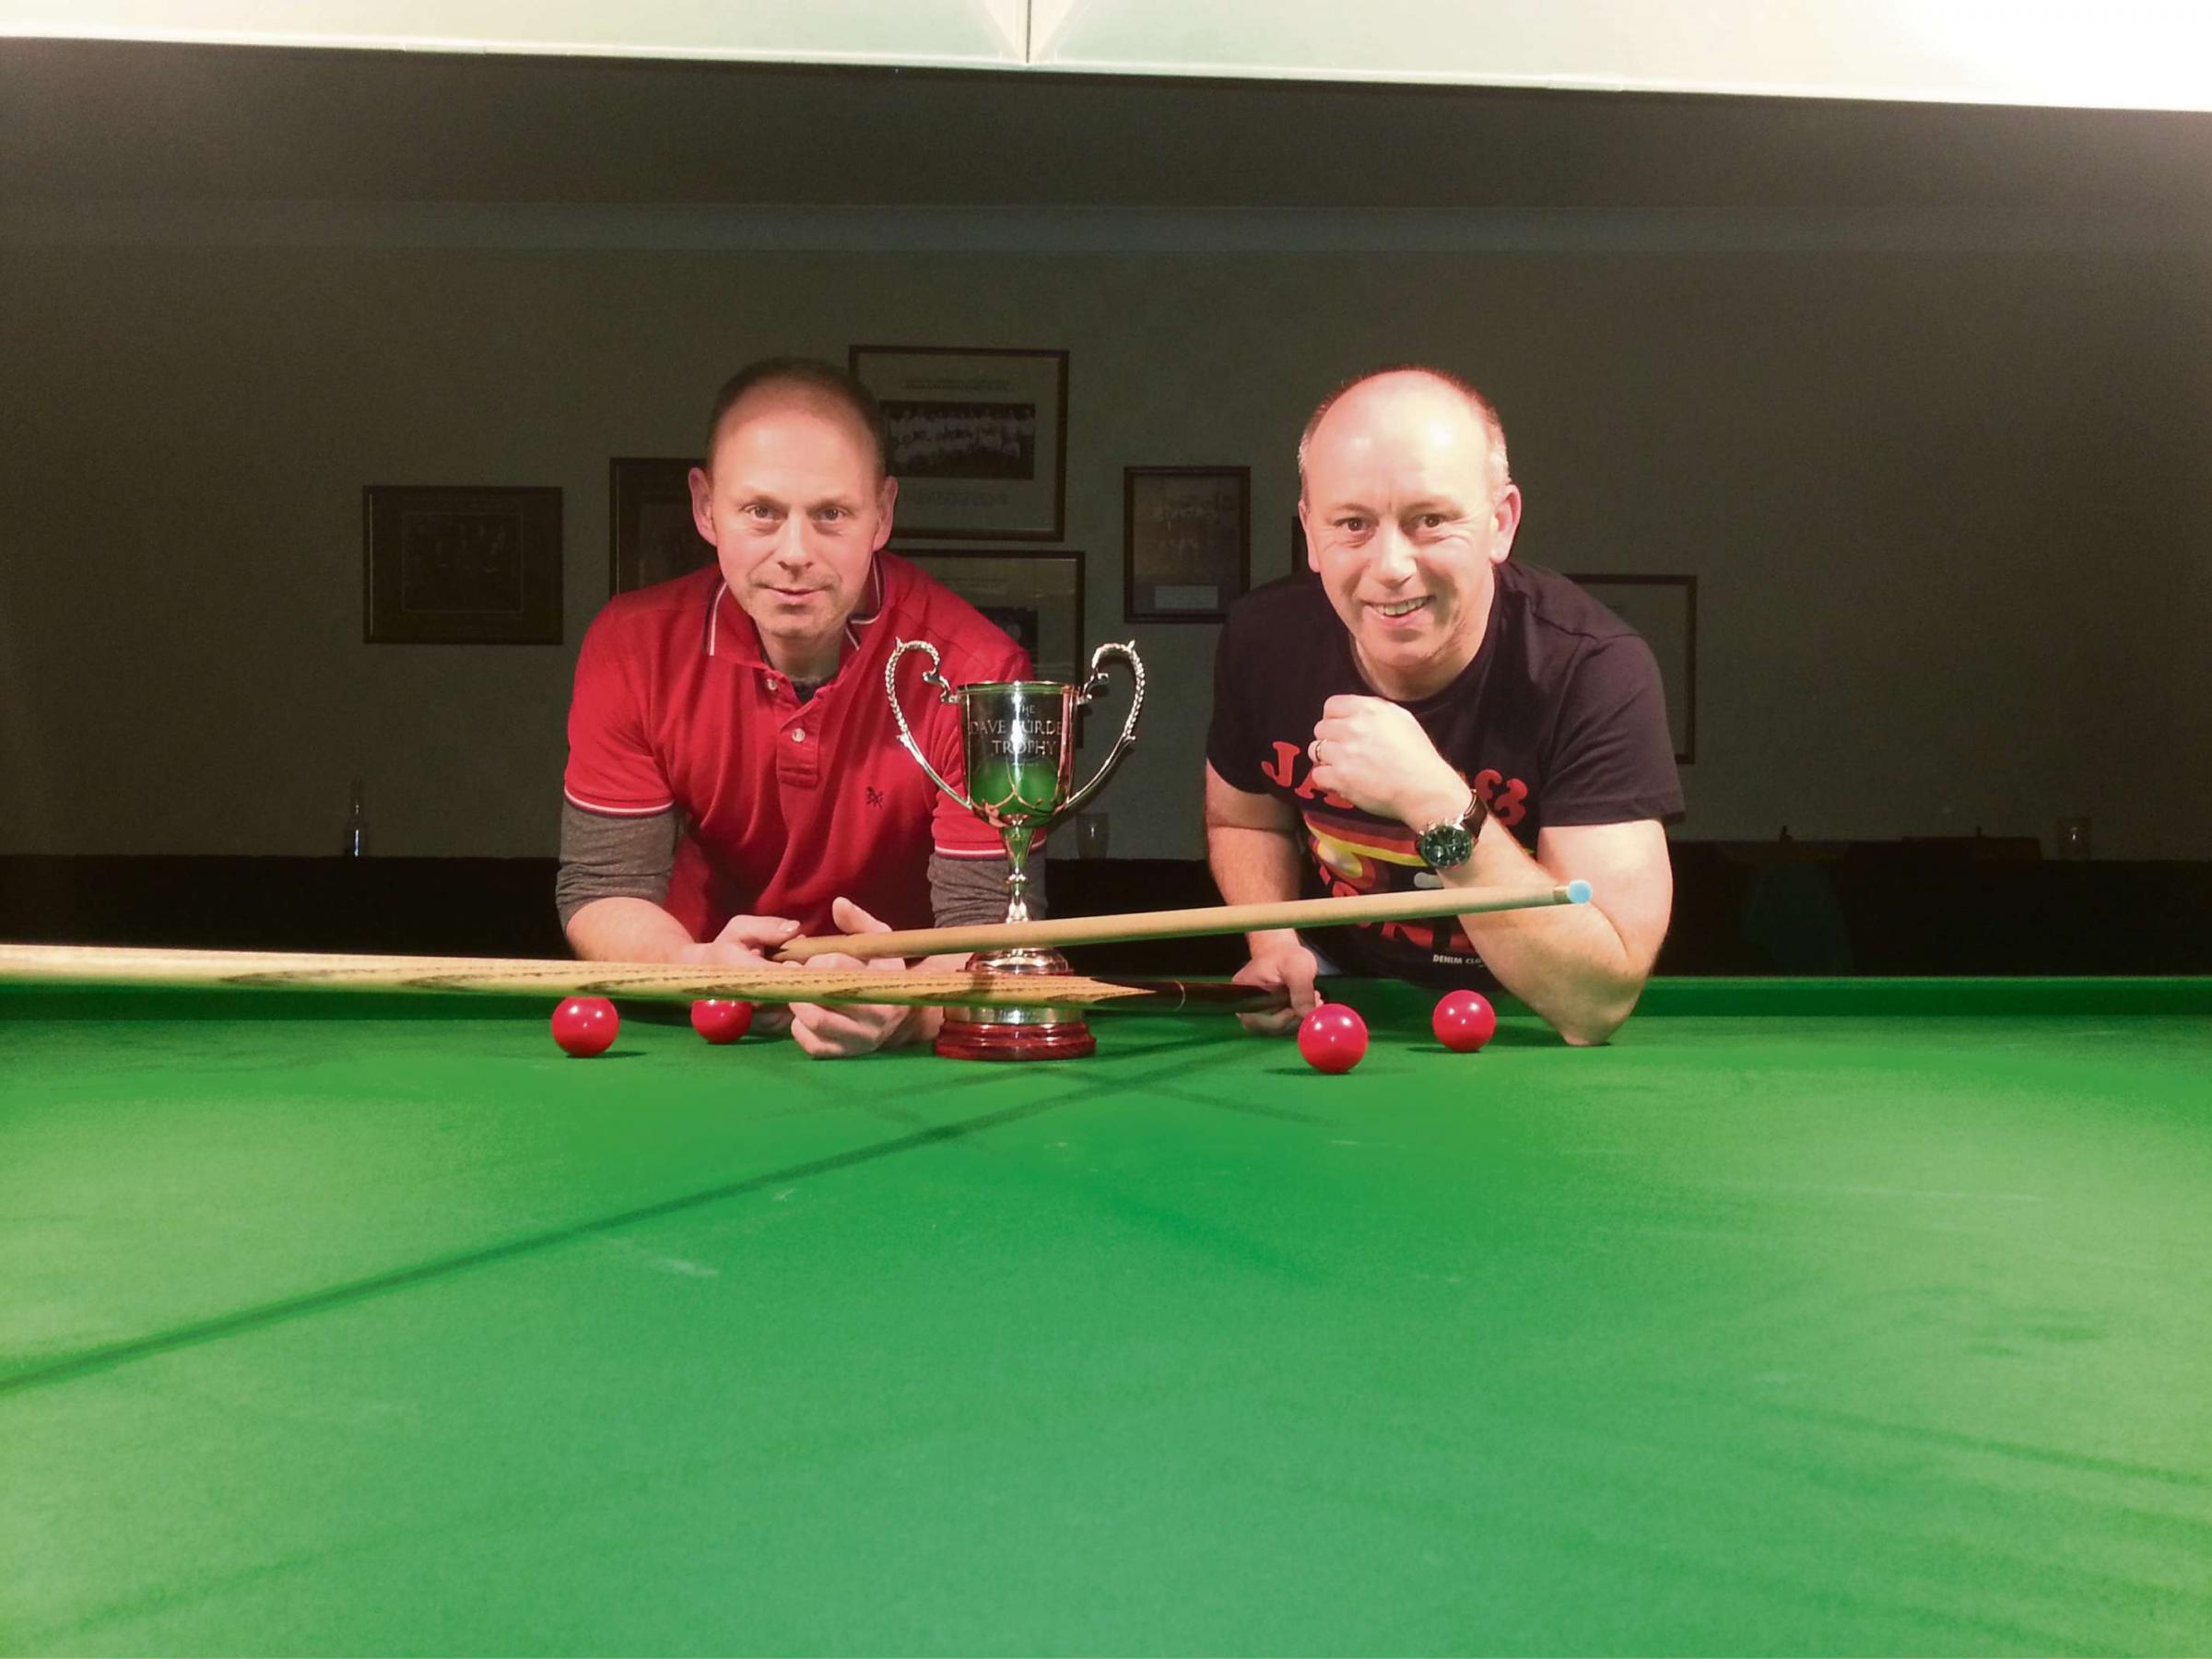 TECHNICAL TUSSLE: The Dave Burdett Pairs winners pictured are Roger Ward and Lee Taylor, representing Malton, who beat Sam England and Glen Mountain 2-1 in a closely fought game at Heworth Conservative Club